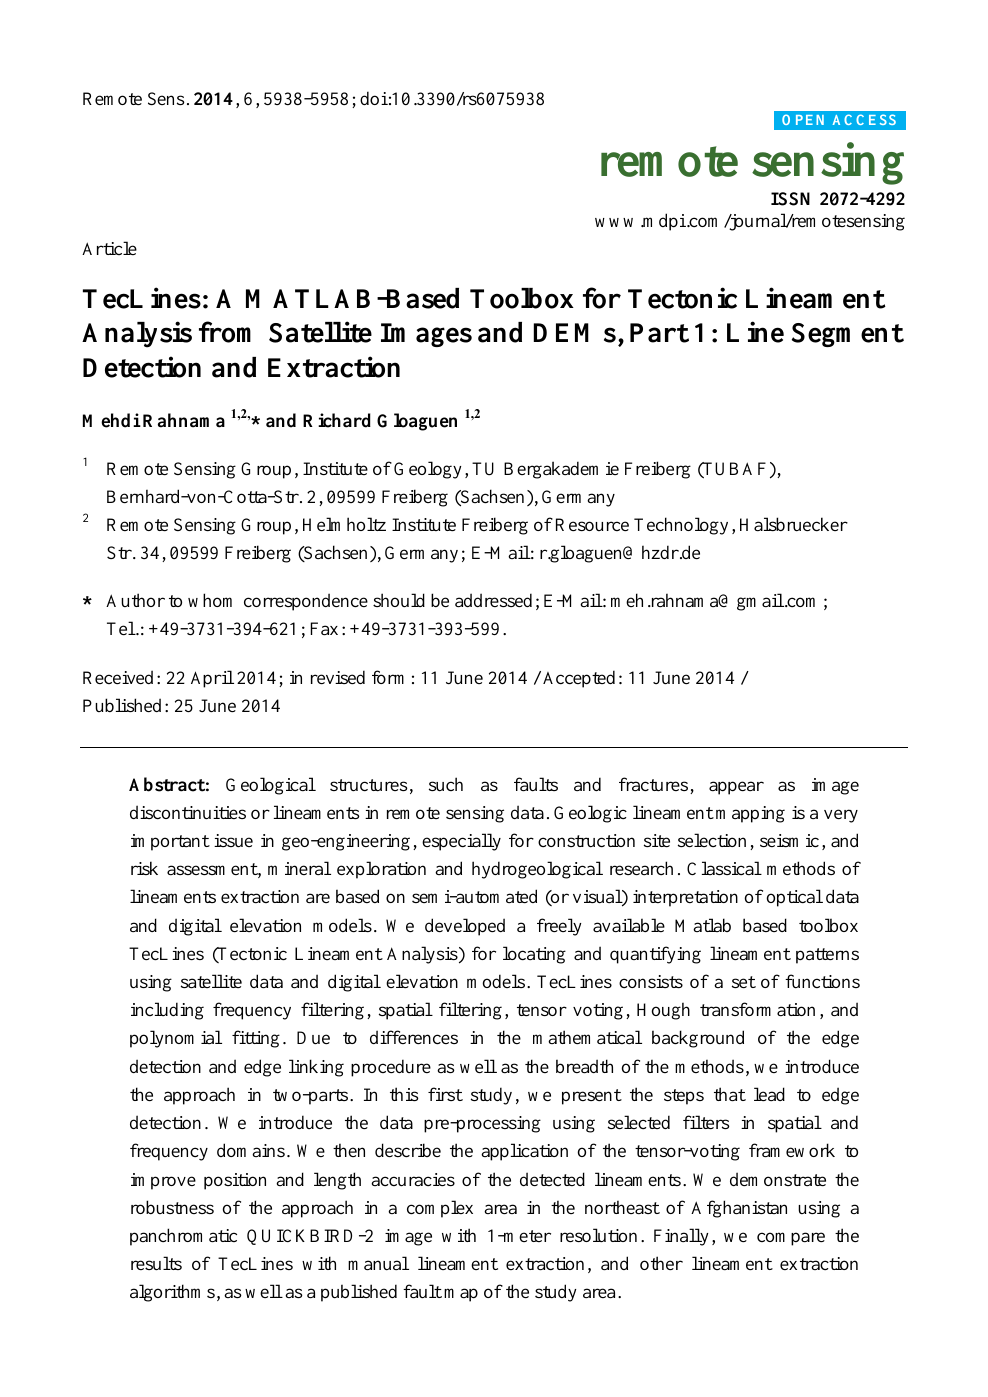 TecLines: A MATLAB-Based Toolbox for Tectonic Lineament